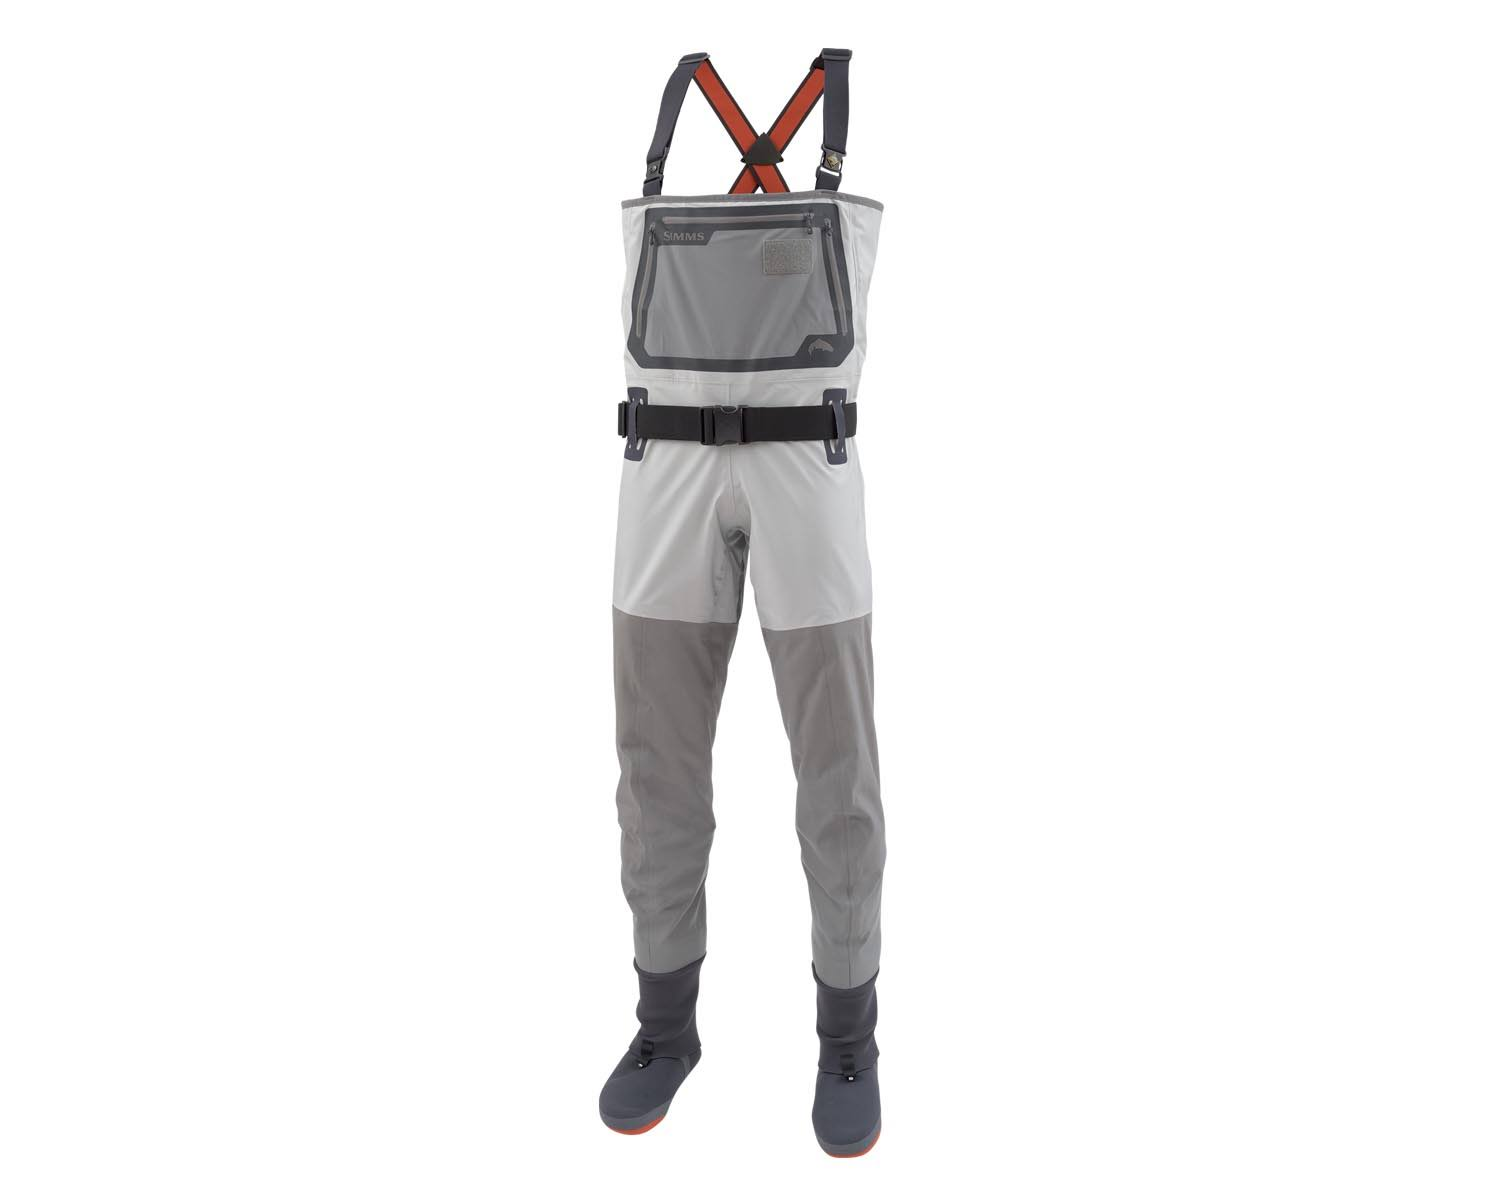 Simms G3 Guide Stockingfoot Cinder Waders - X-Large